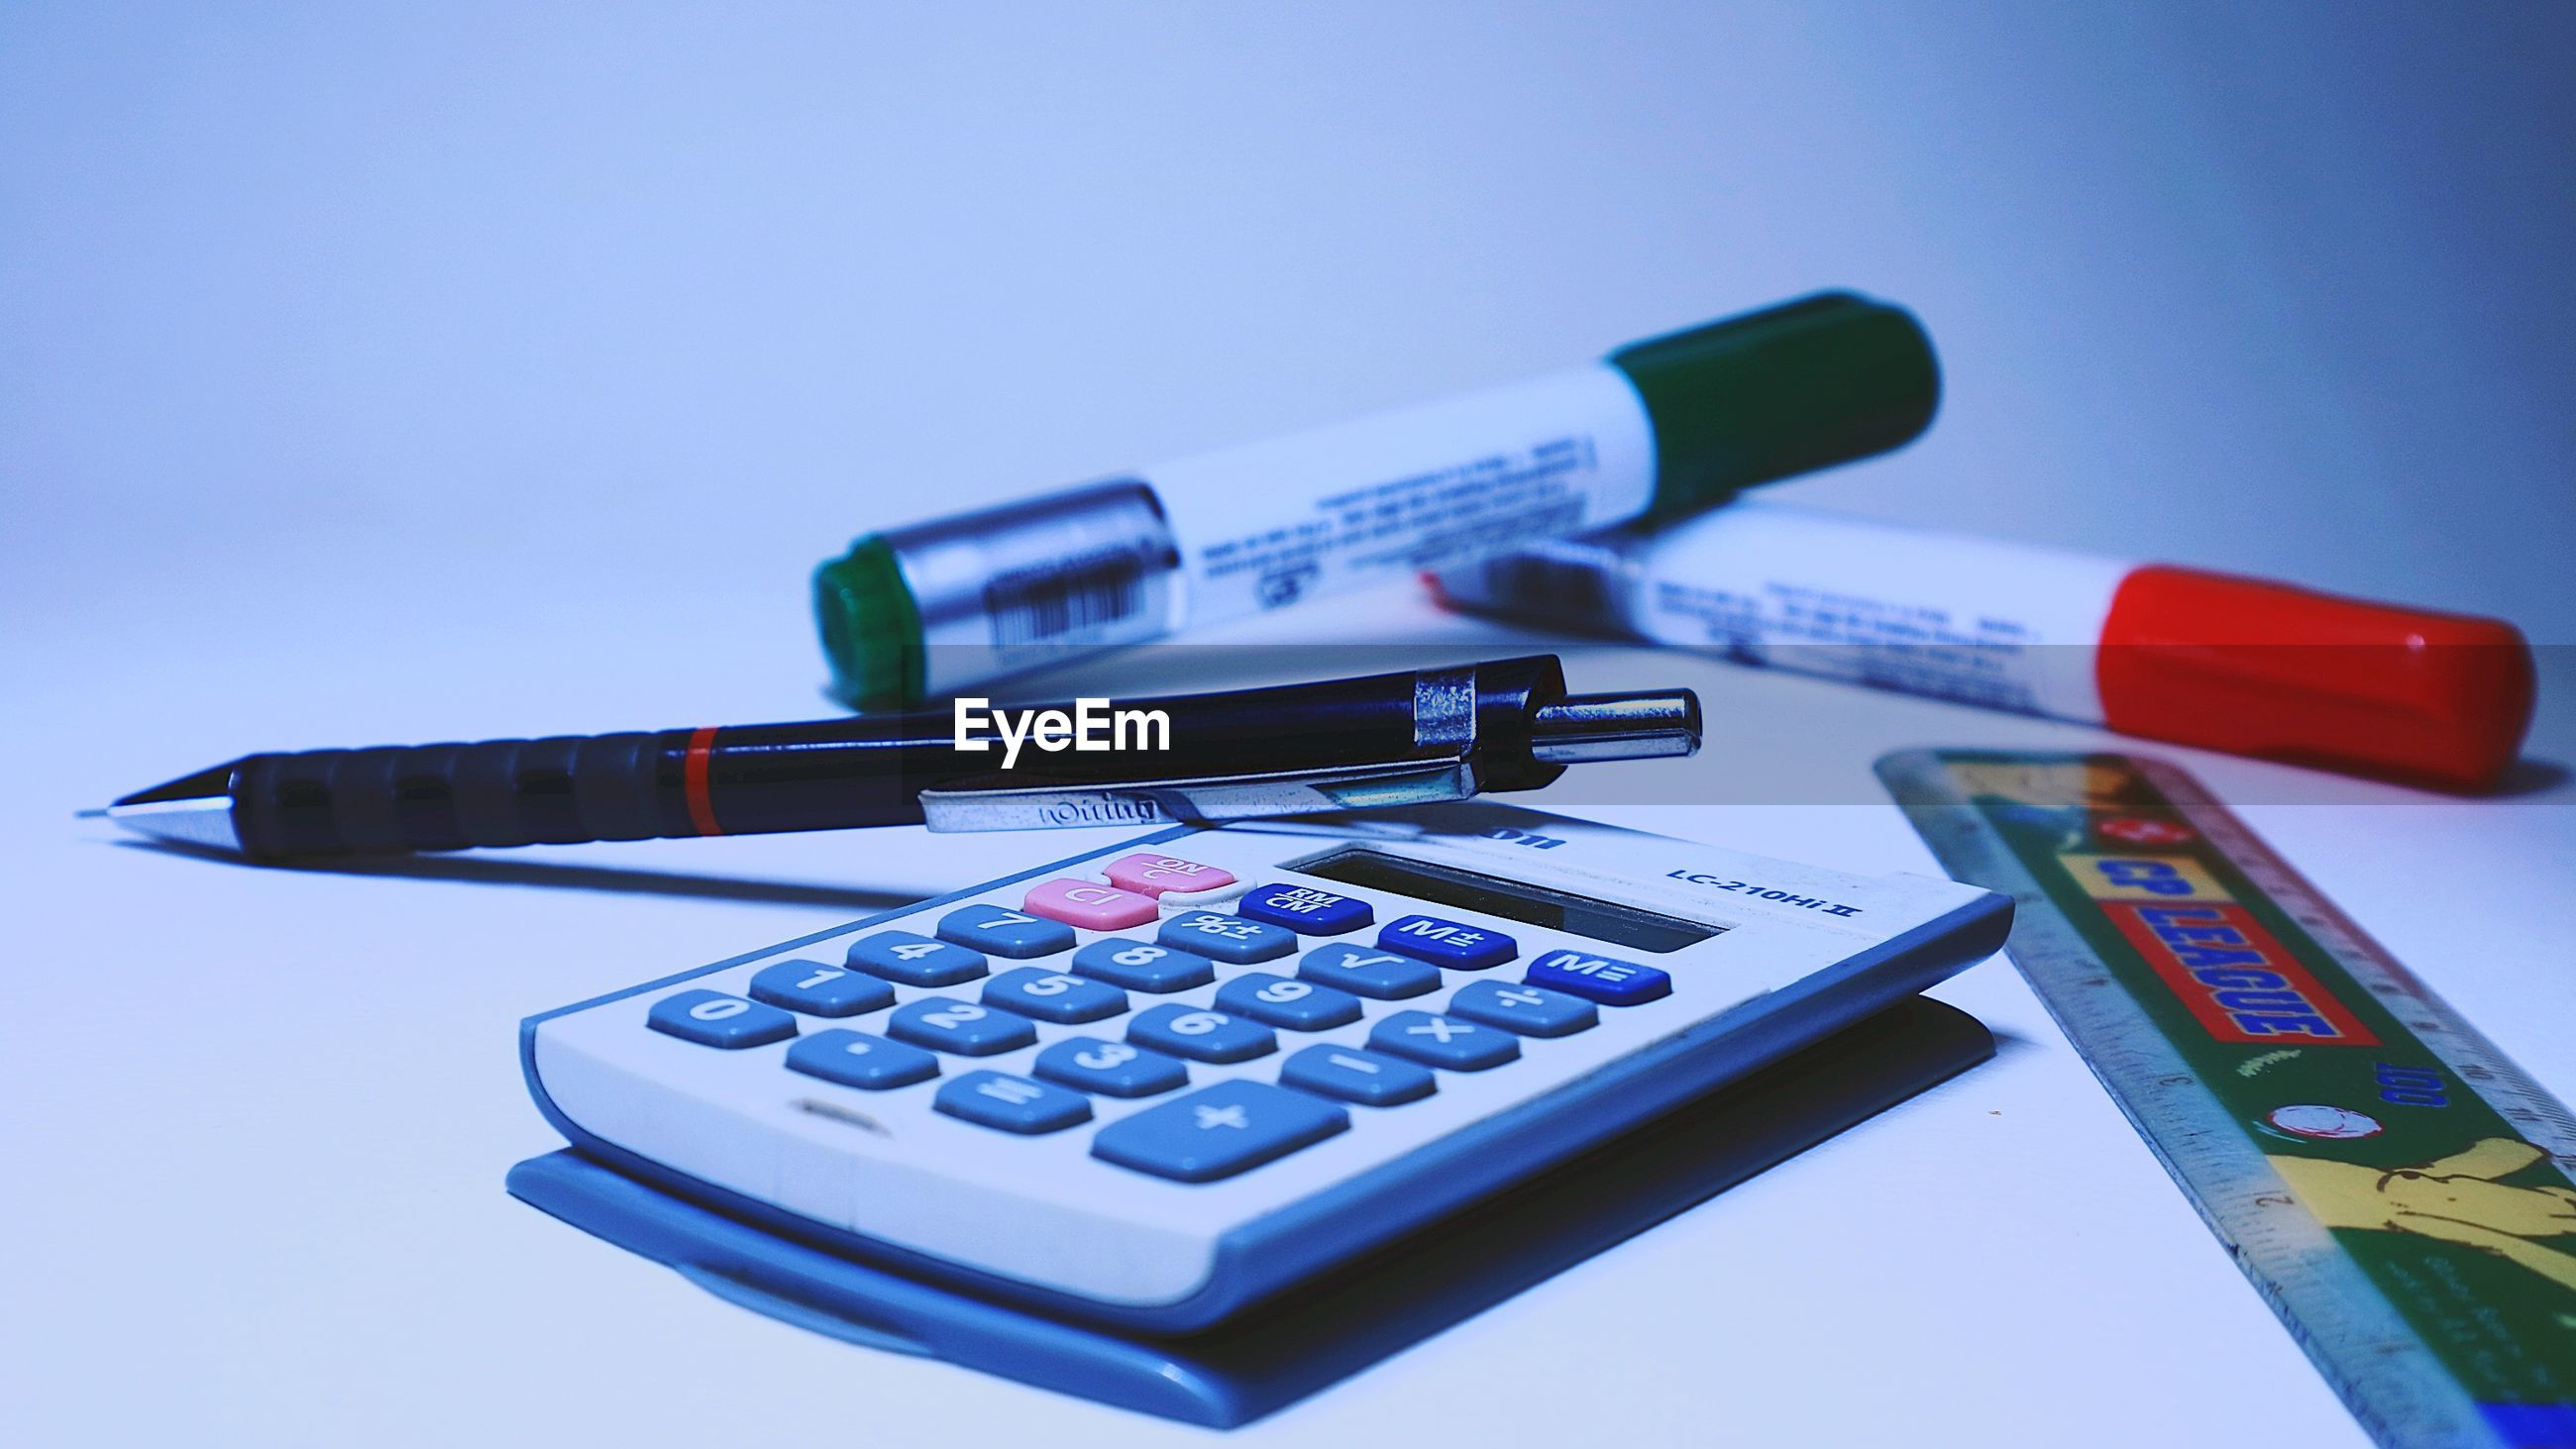 Close-up of calculator and writing instrument on table